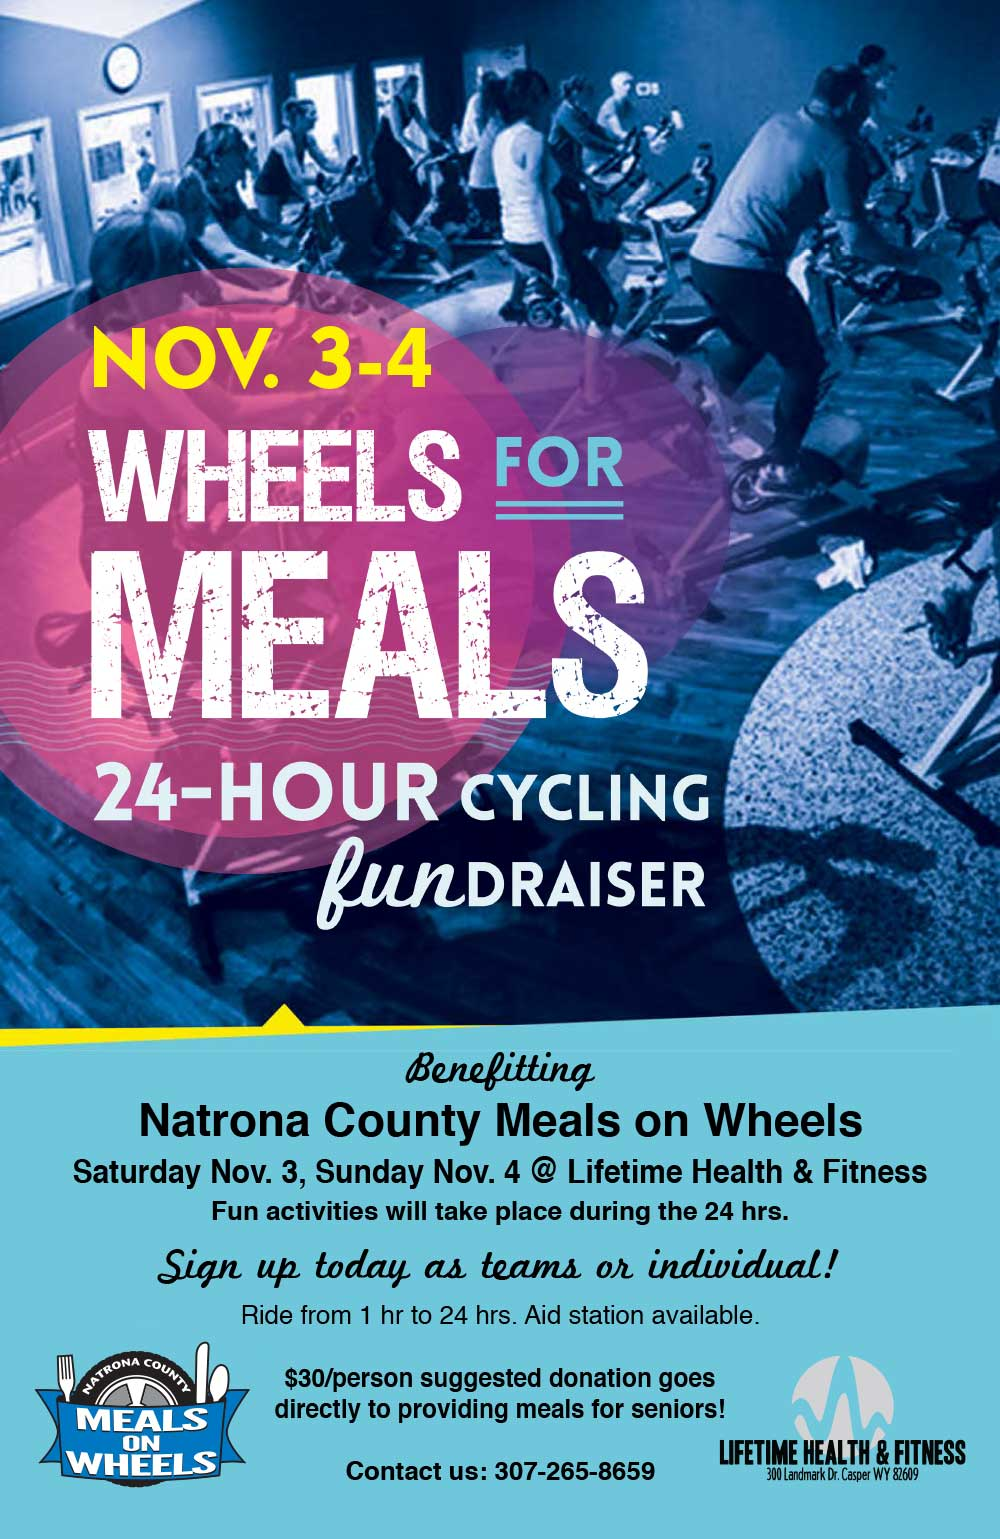 Wheels for Meals 24-Hour Cycling Fundraiser